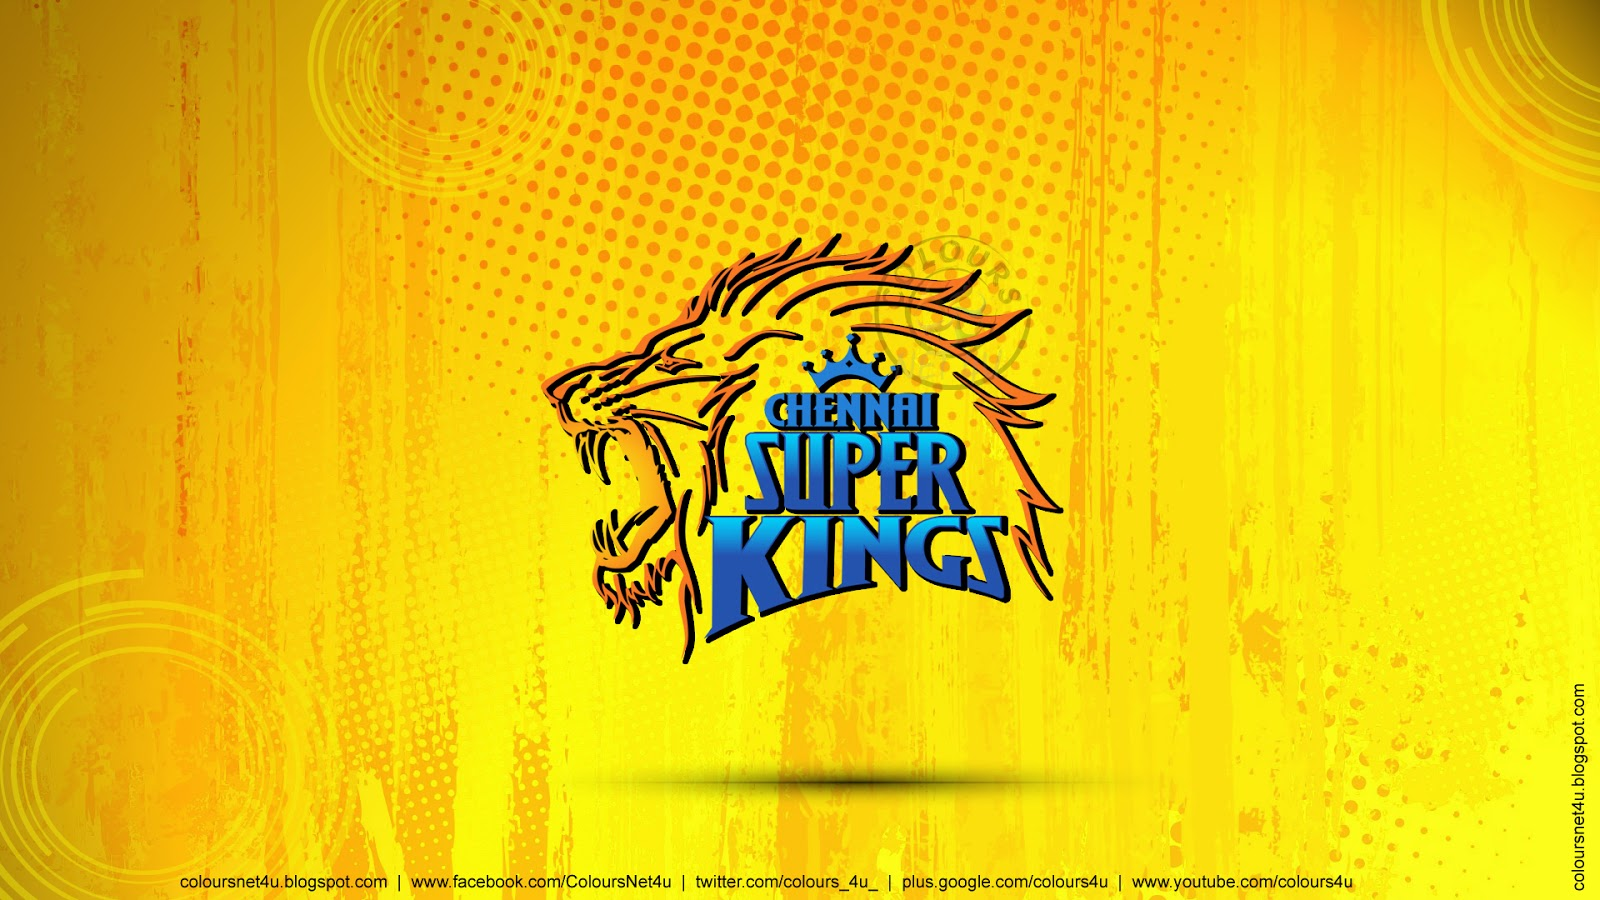 Welcome To Colours Net 4u Chennai Super Kings 601915